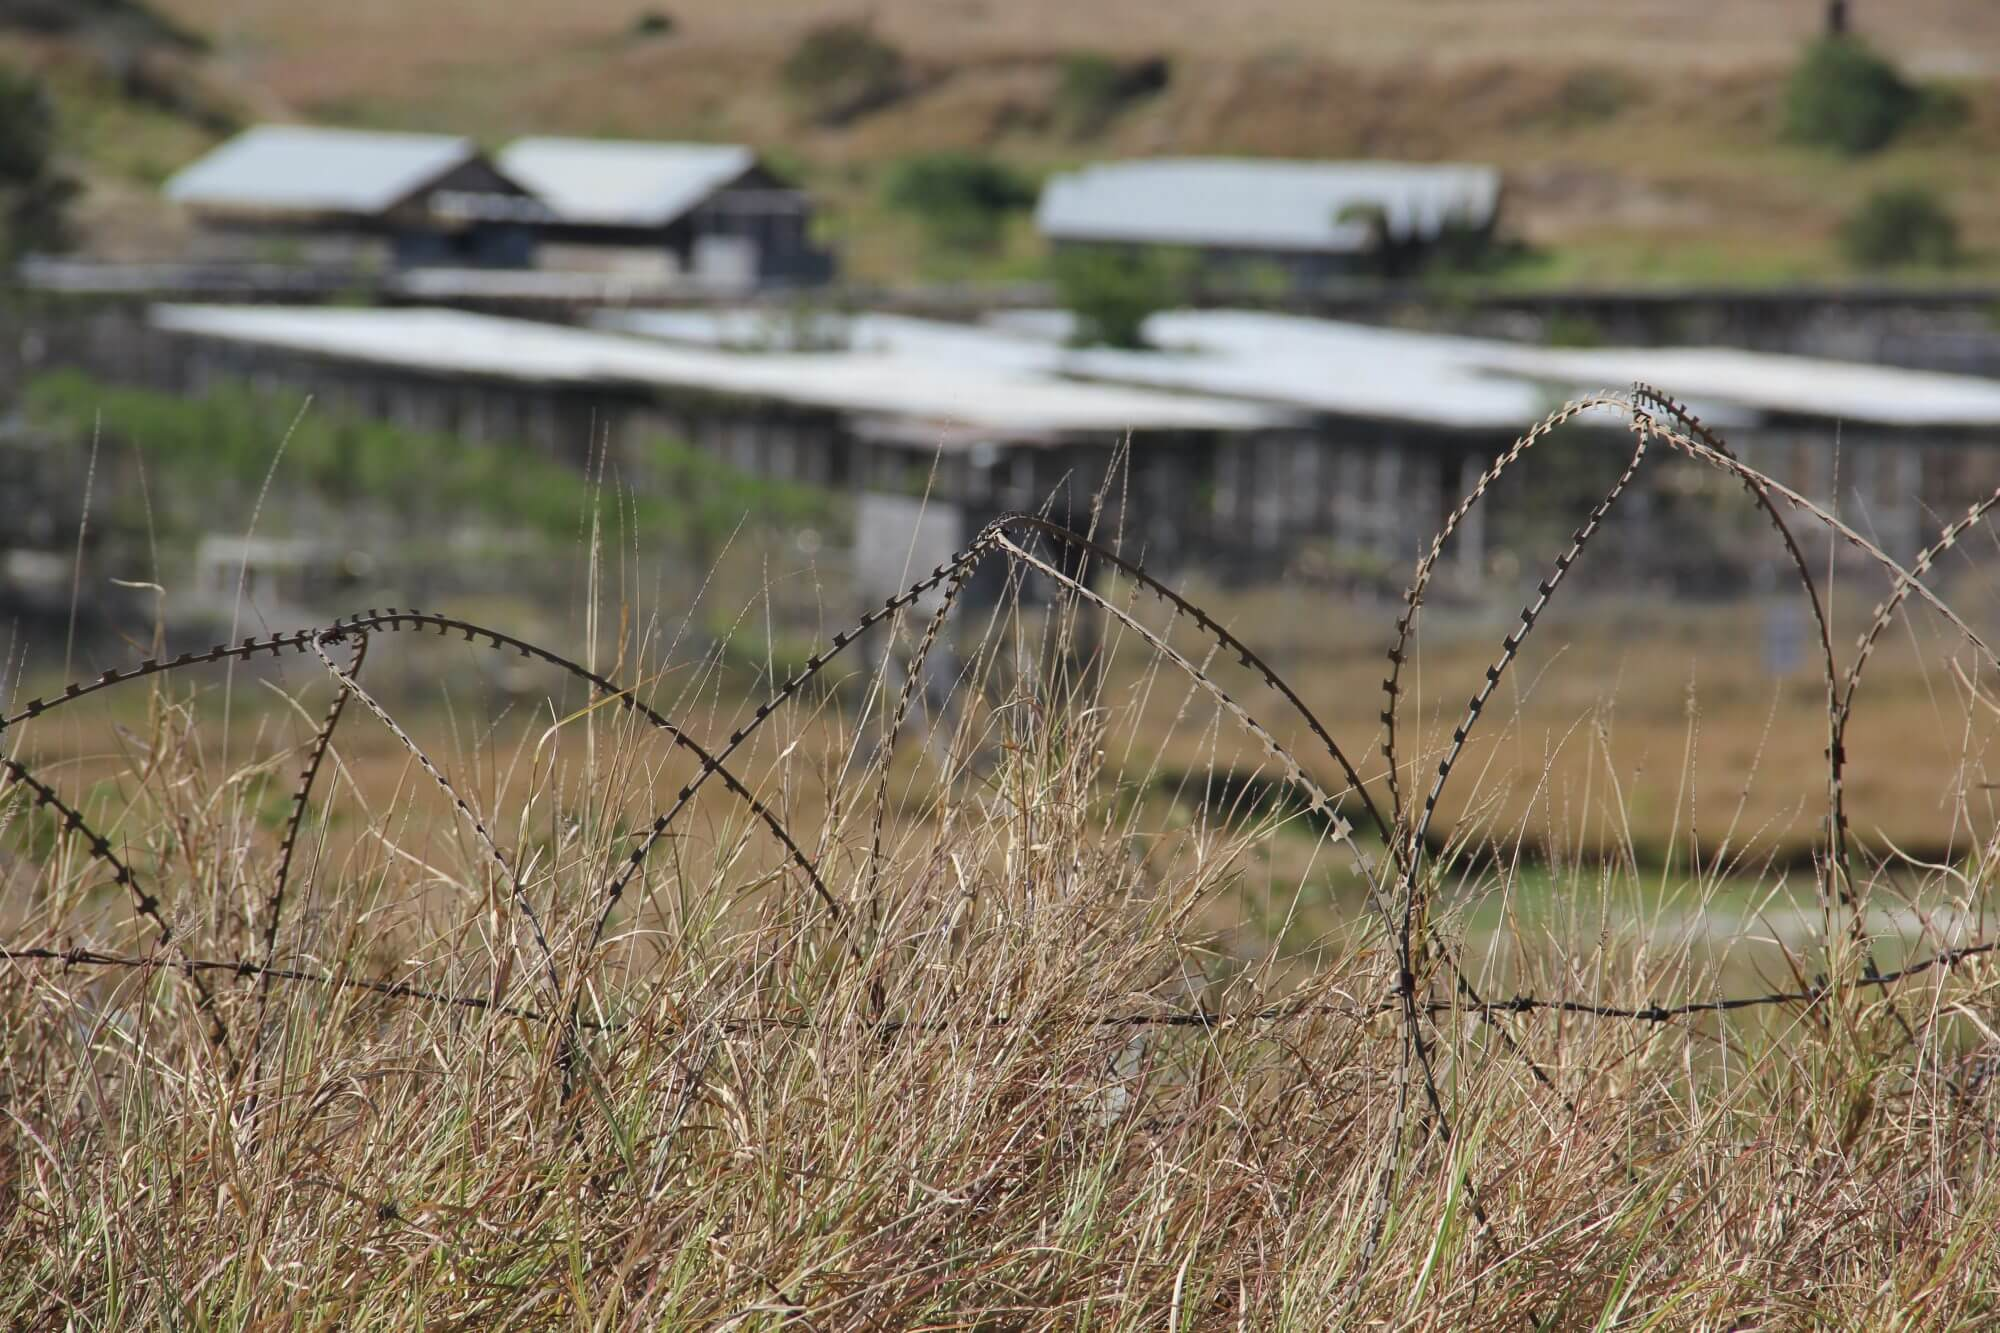 Judge to review letter from Guantanamo detainee